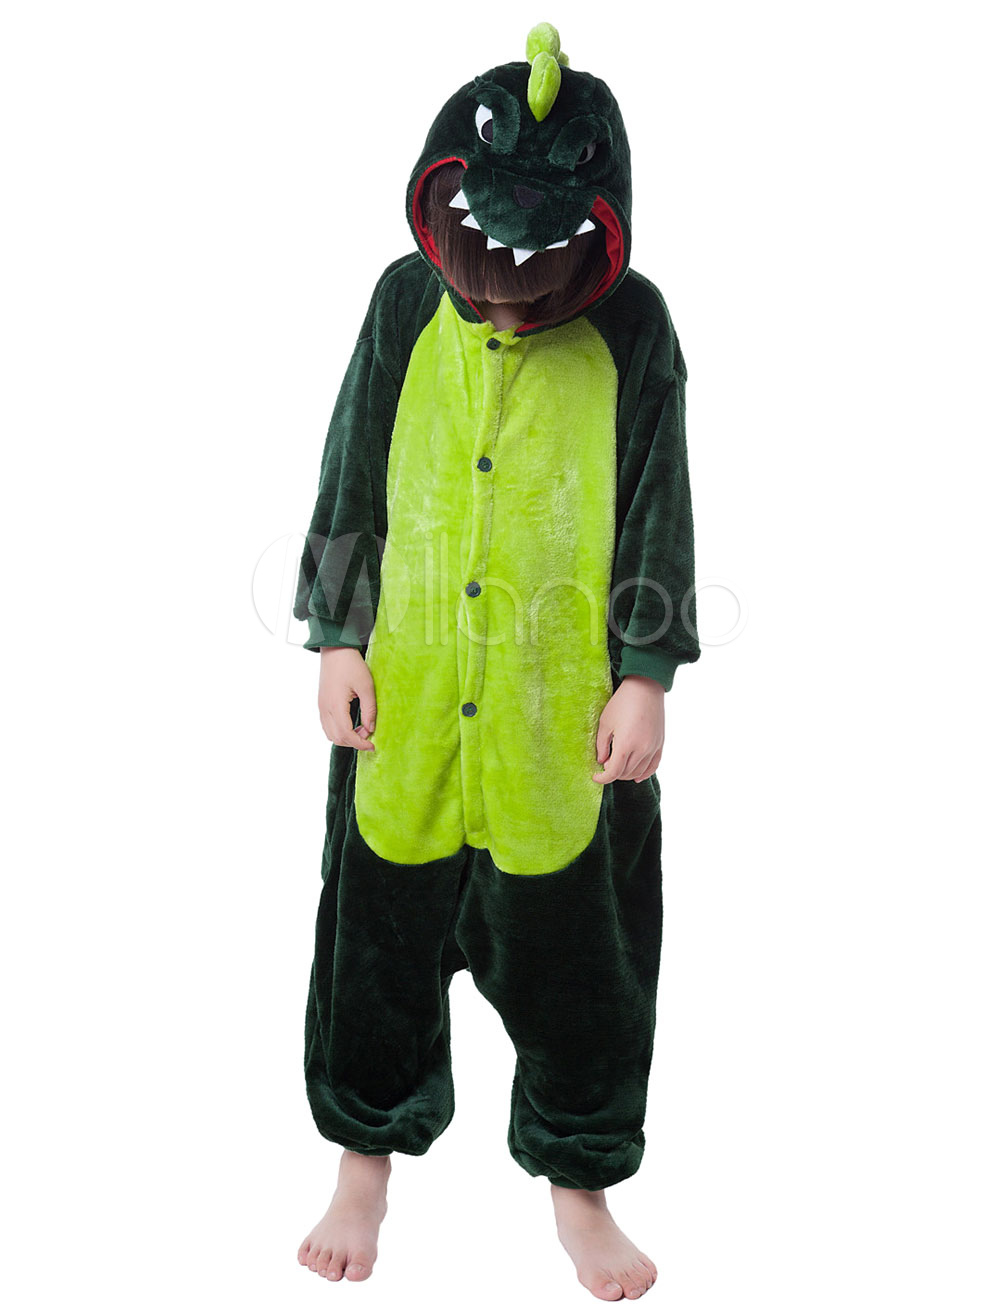 Kigurumi Pajama Dinosaur Onesie For Kids Dinosaur Synthetic Jumpsuit Mascot Costume Halloween